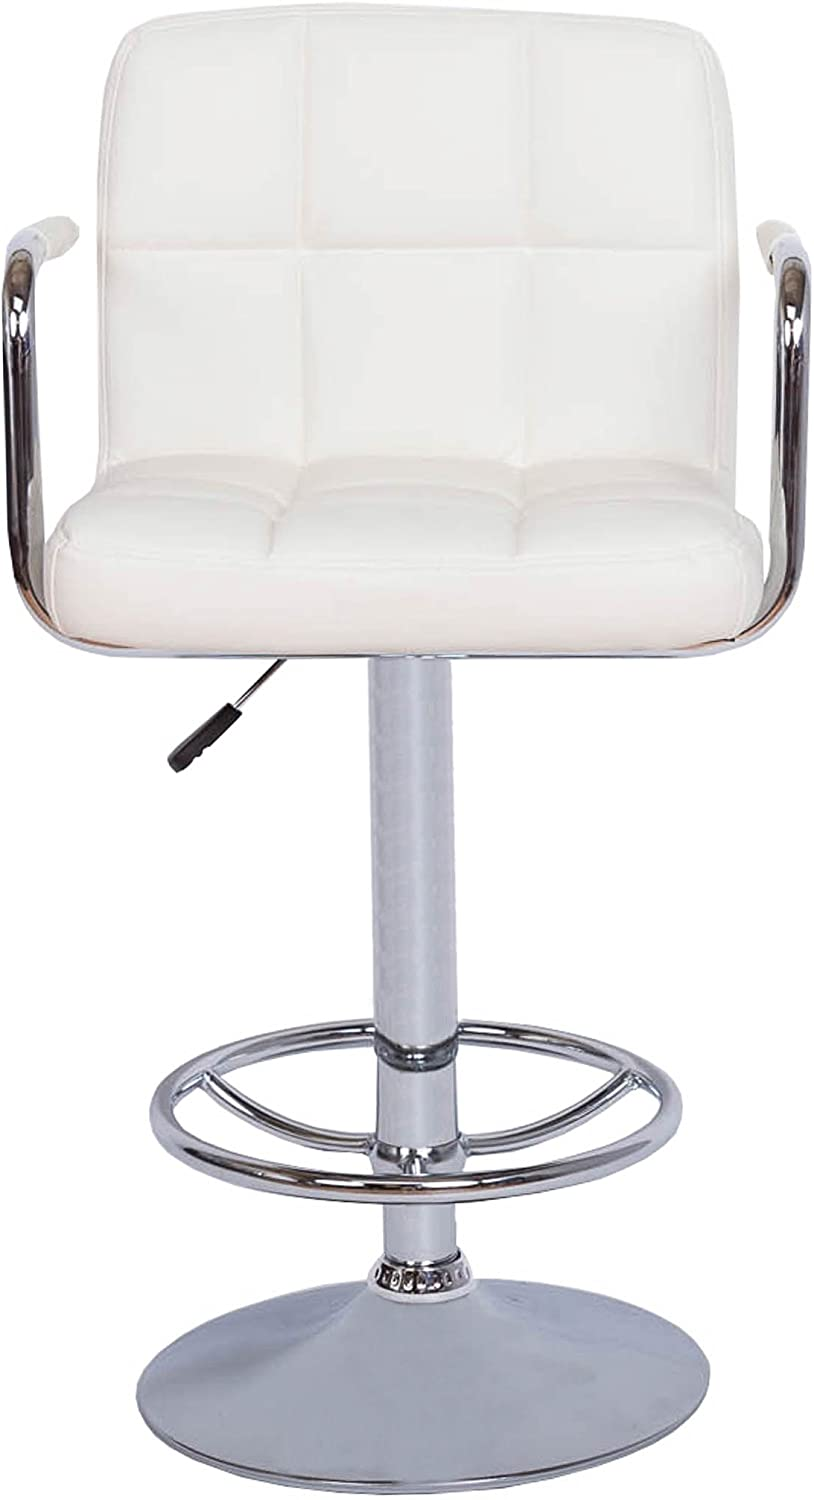 Vogue Furniture Direct Direct Adjustable Height Swivel Barstools With Armrest and Footrest, White